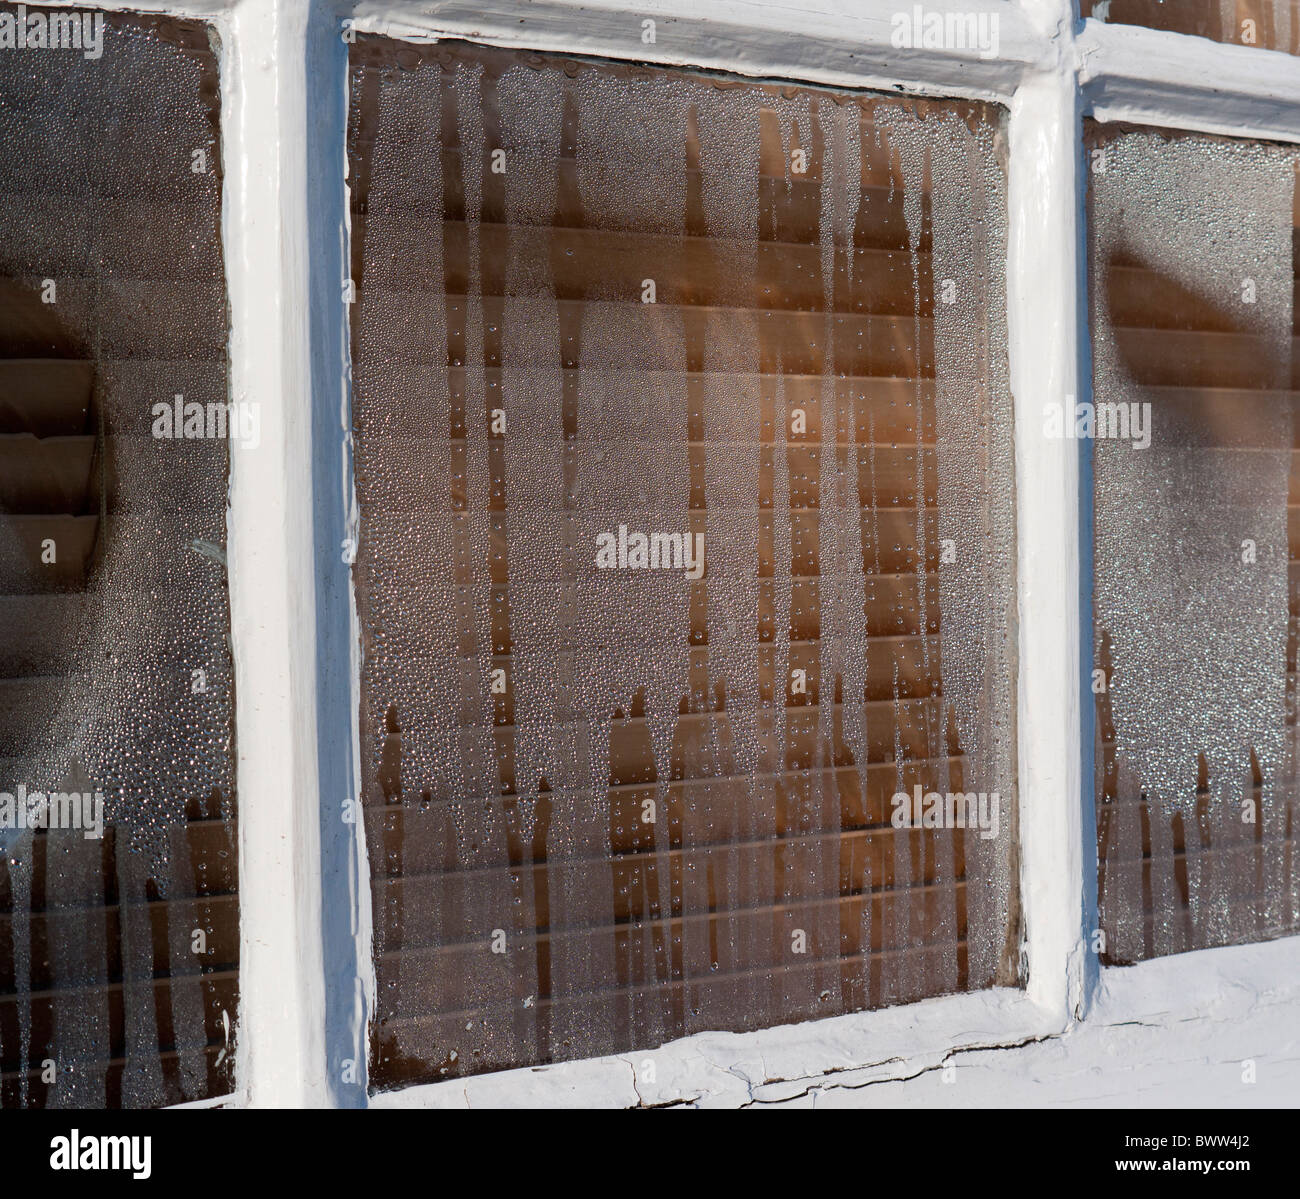 Condensation on a window - Stock Image